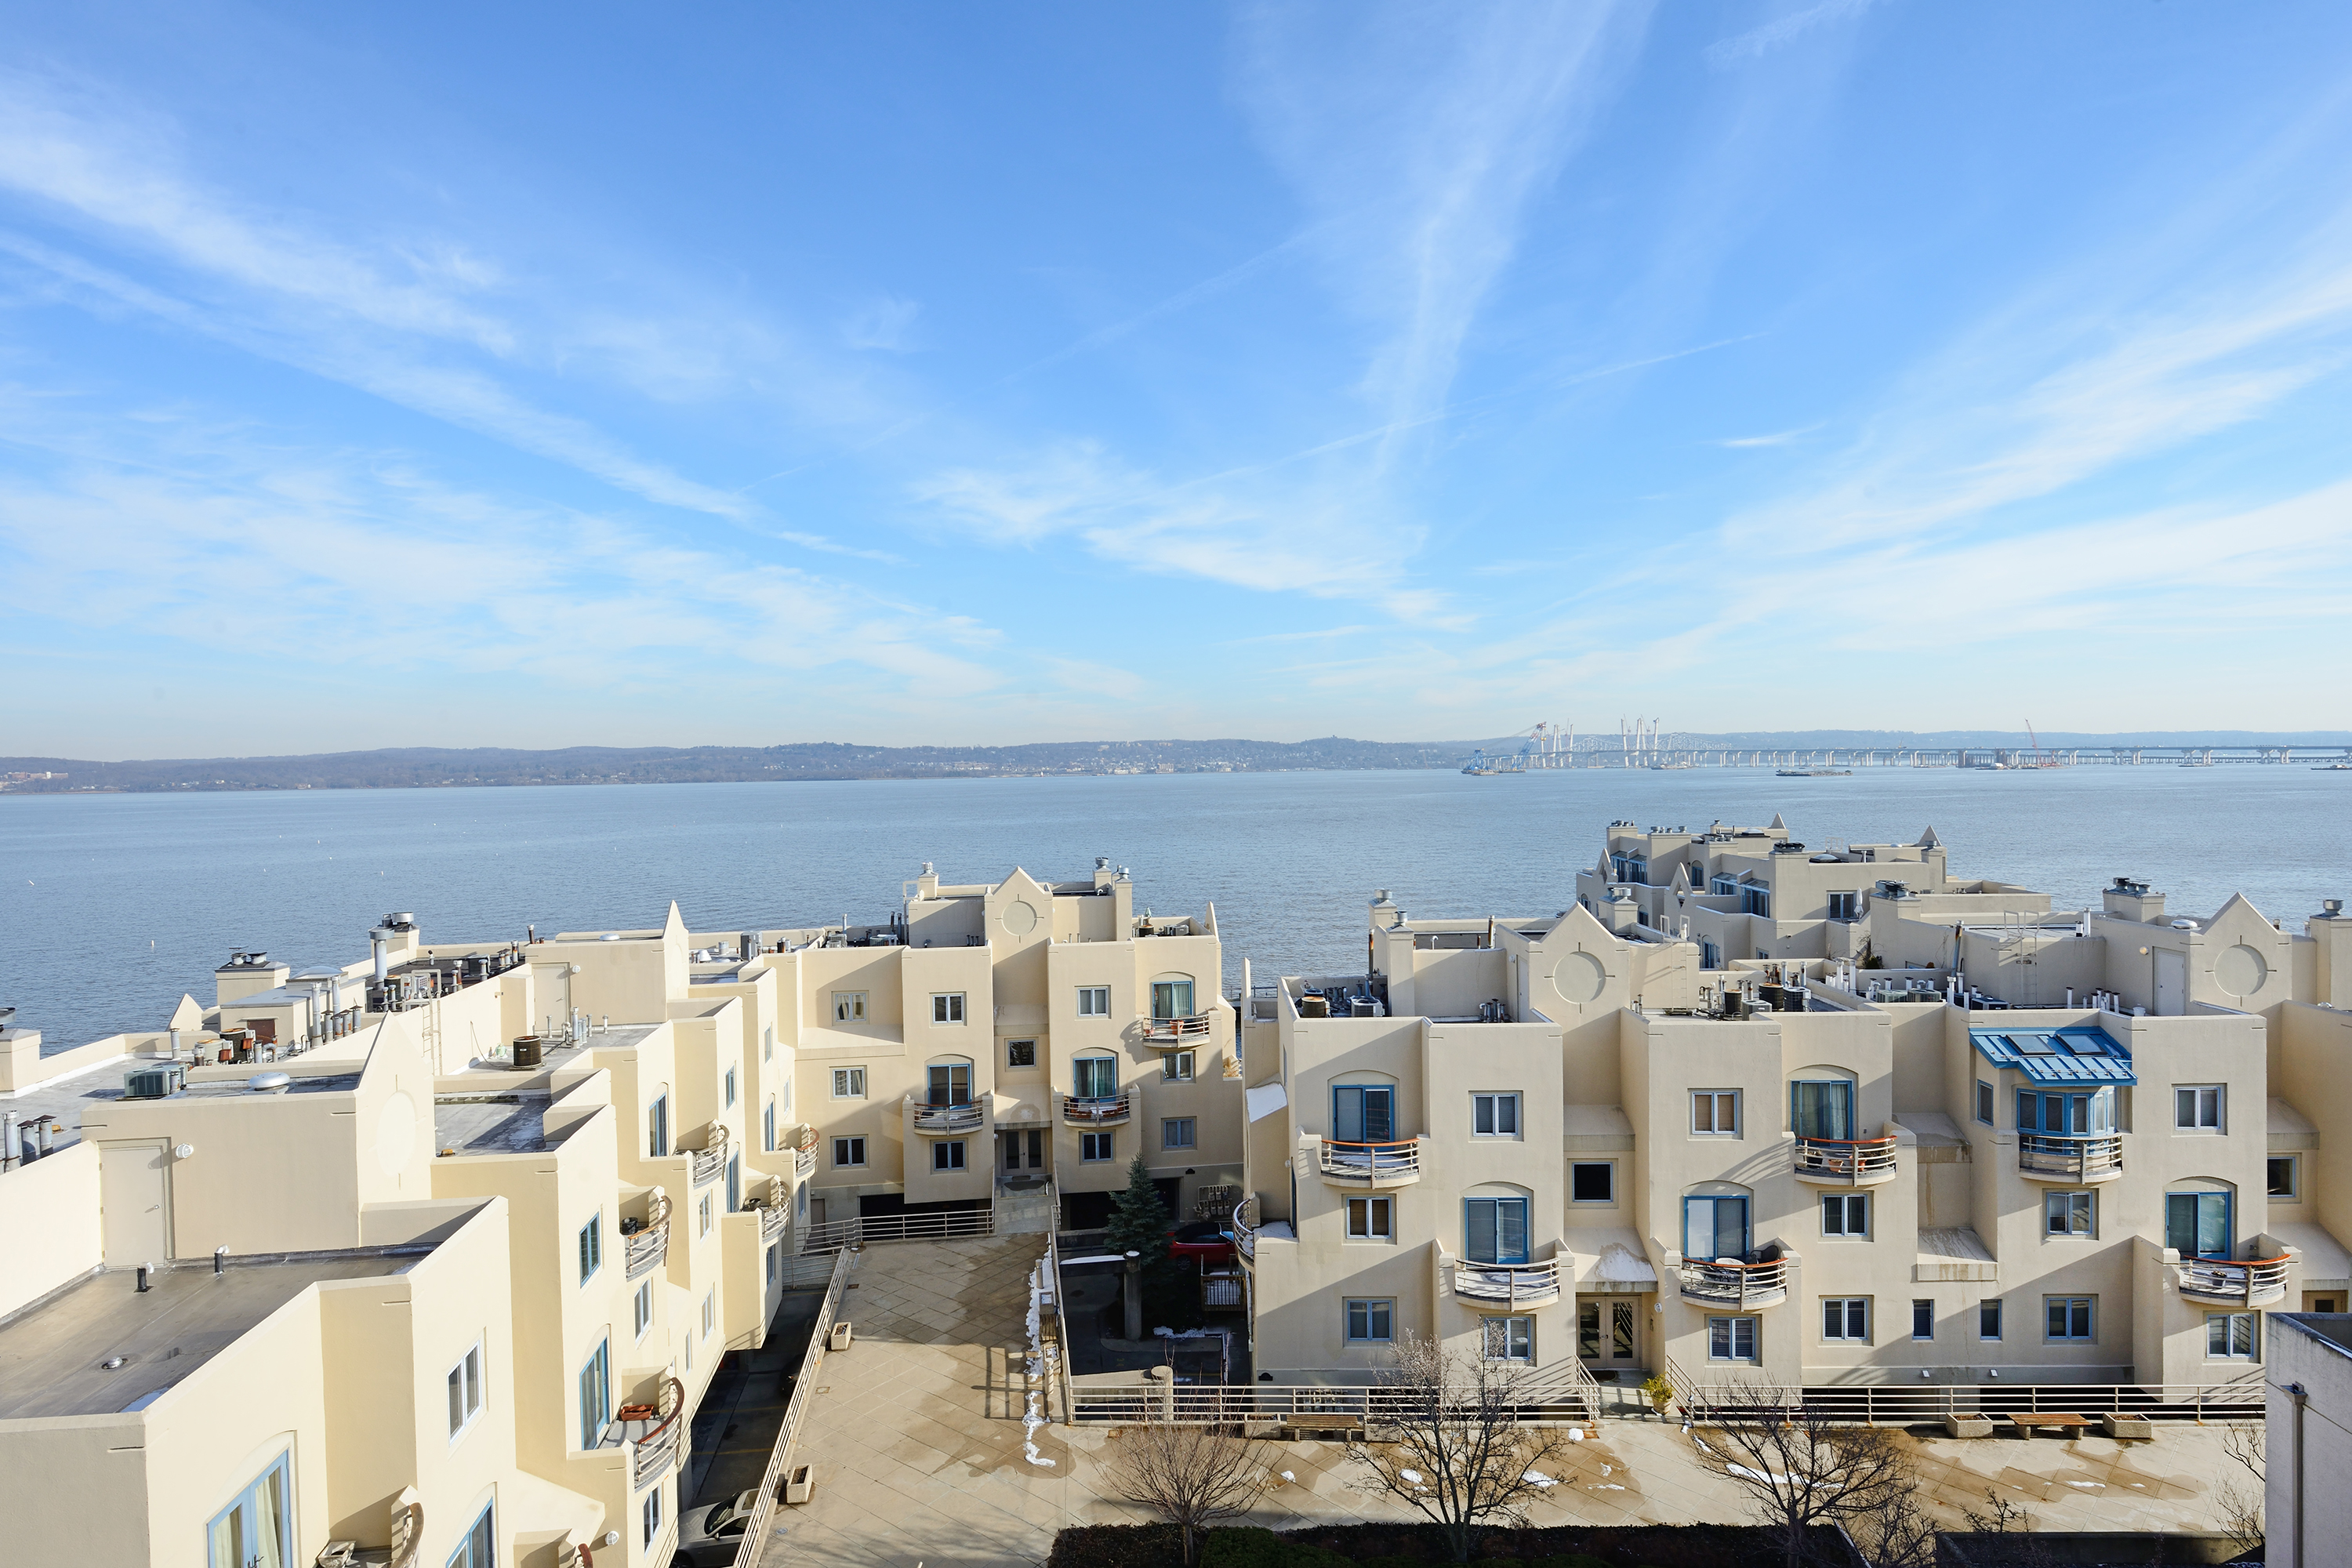 Condominium for Sale at The Clermont 3 Main St #504 Nyack, New York 10960 United States